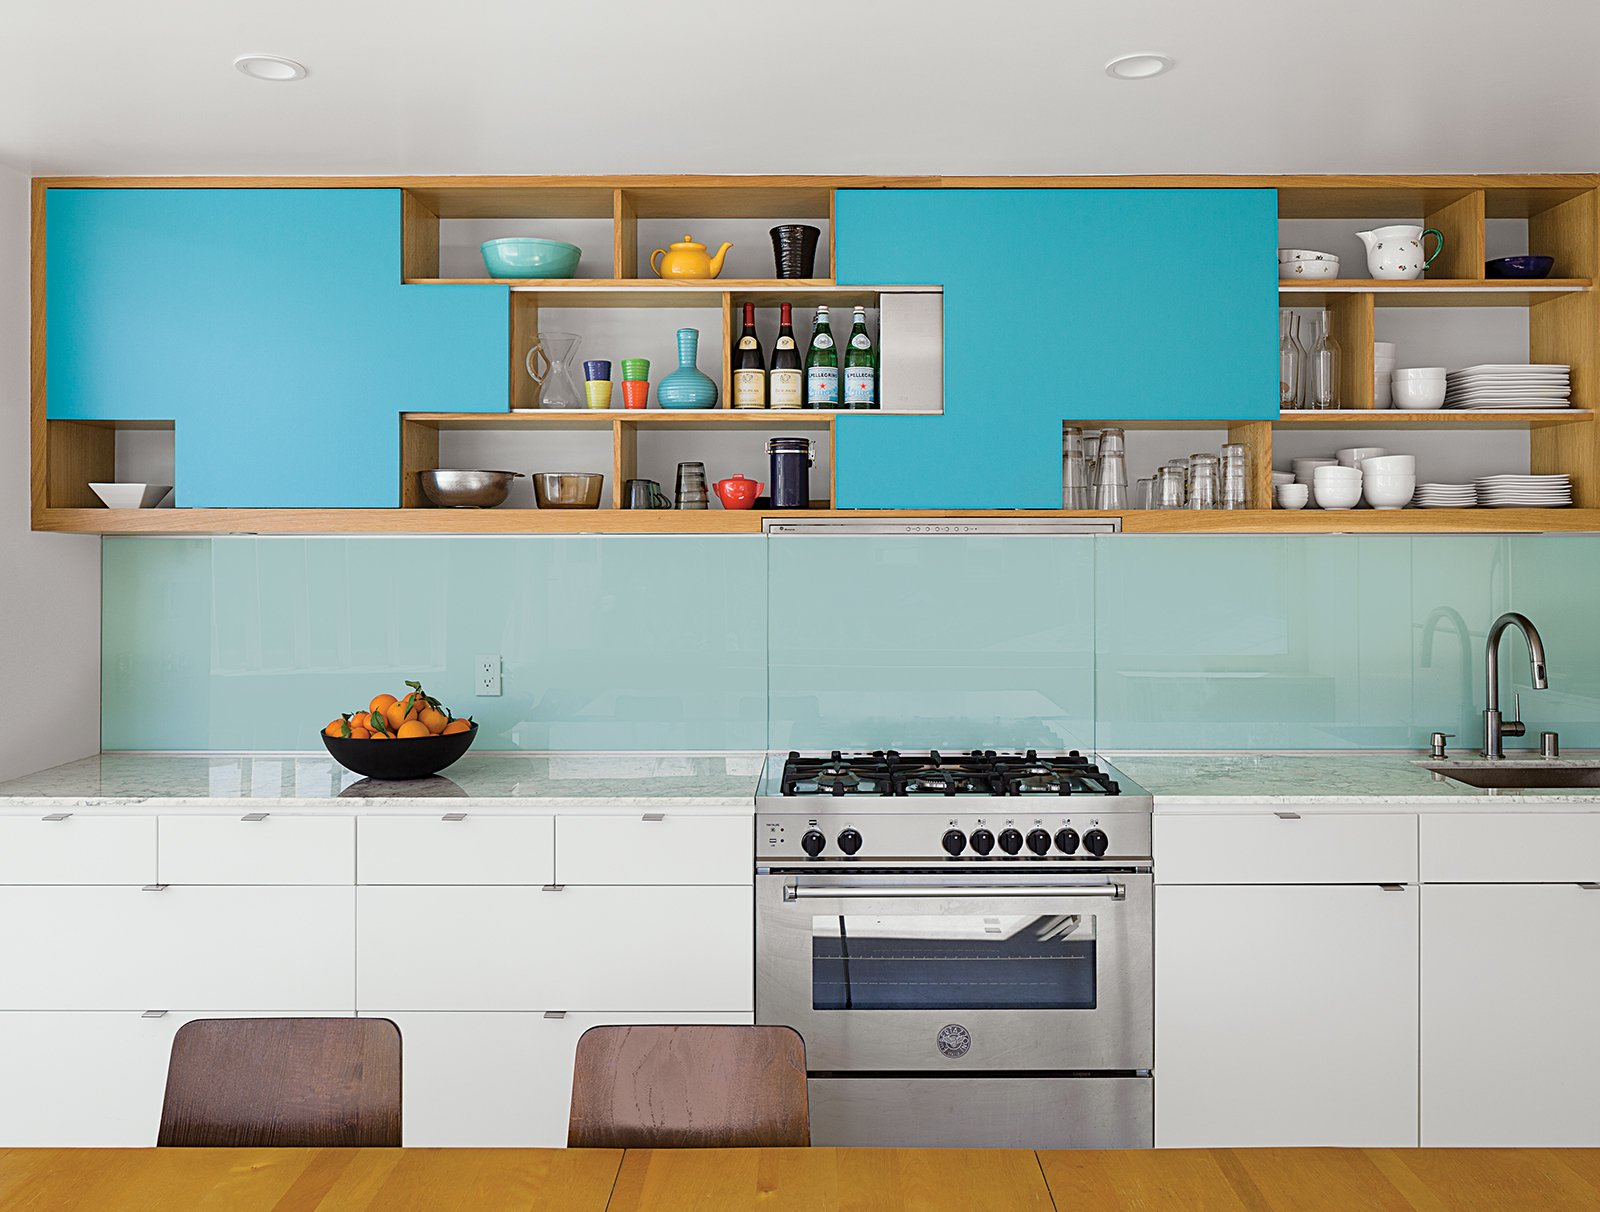 Modern cabinet finger pulls in bright and shiny chrome dot the drawers in this sleek kitchen in Venice, California.